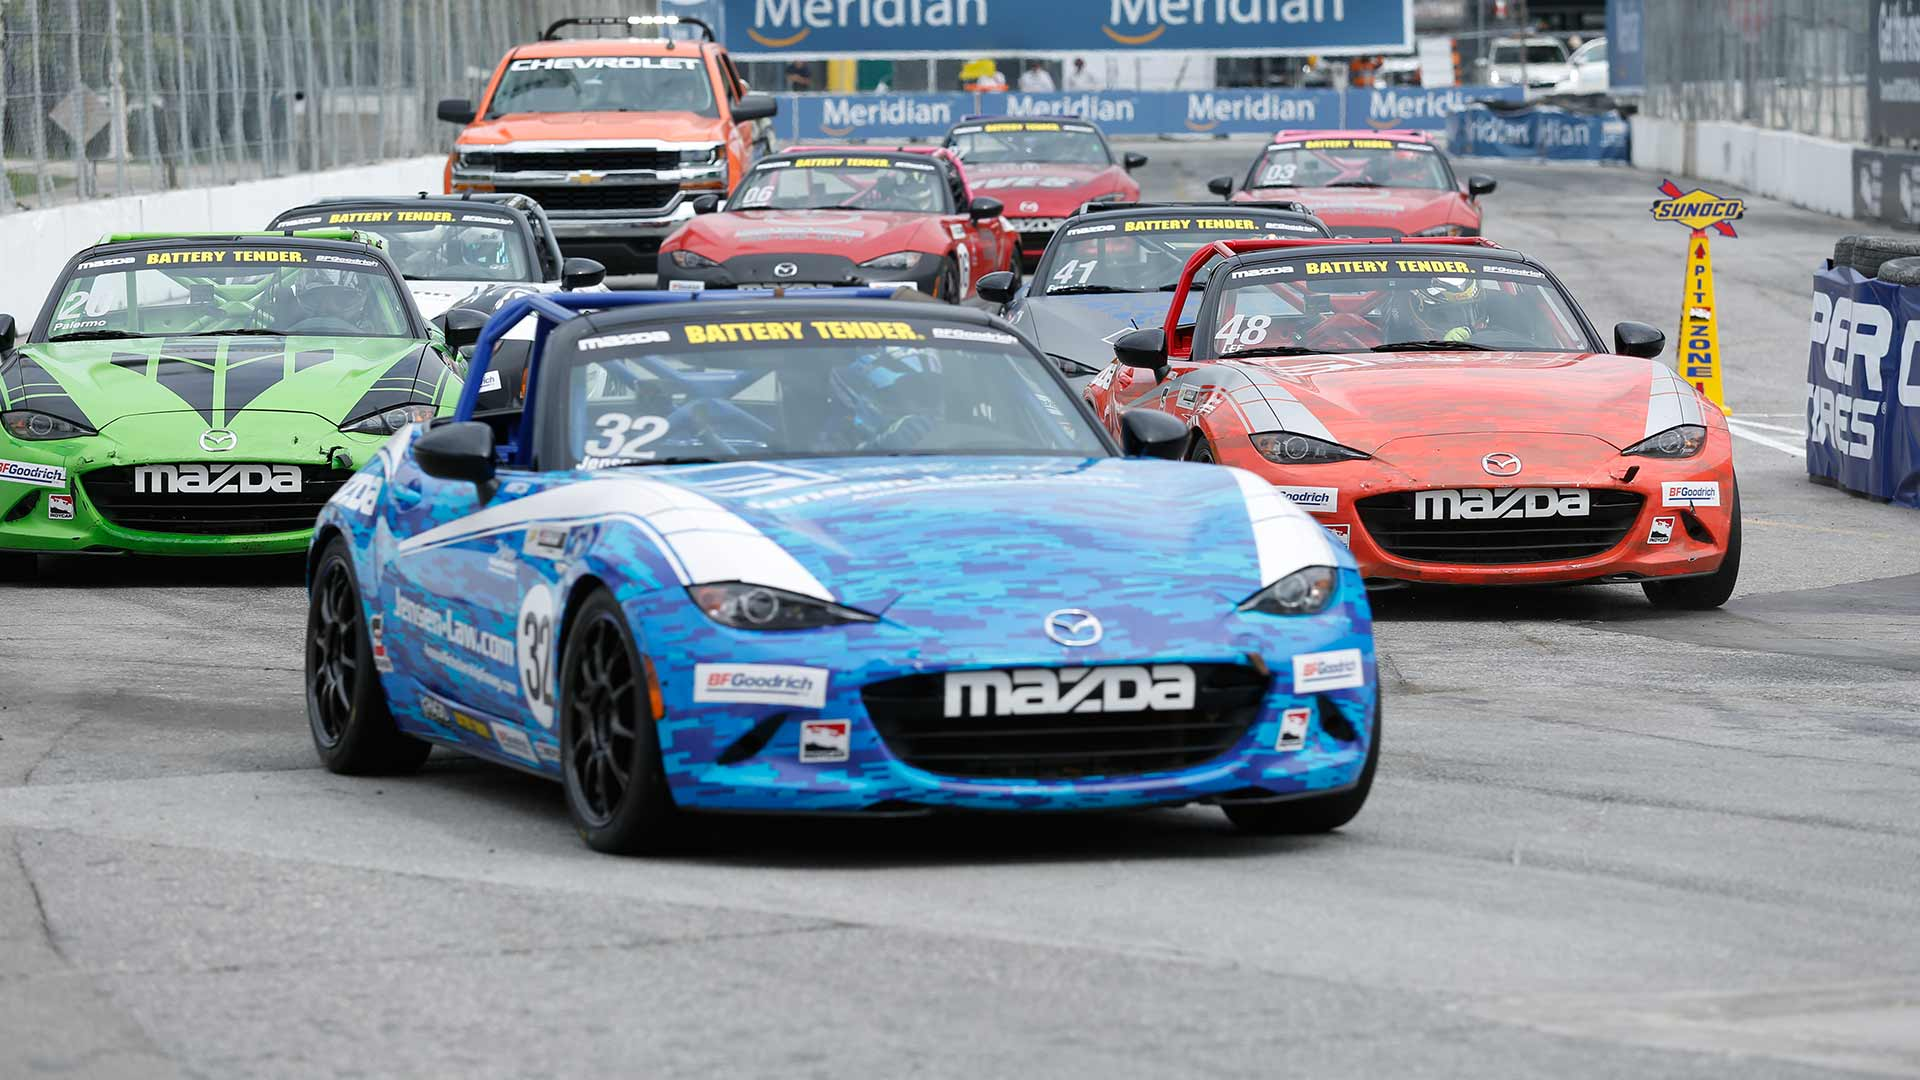 Mazda MX-5 Cup cars racing on track